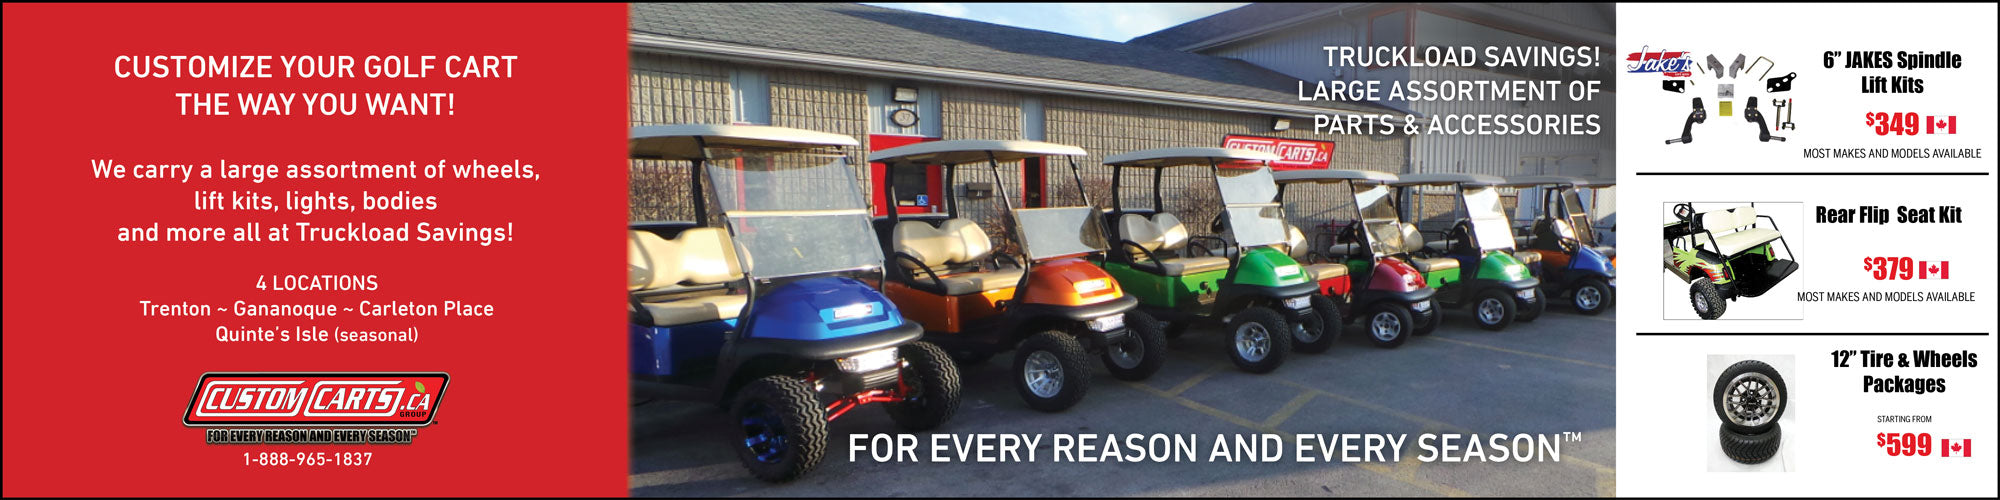 Customcarts ca - Golf Carts and Golf Car Parts Superstore